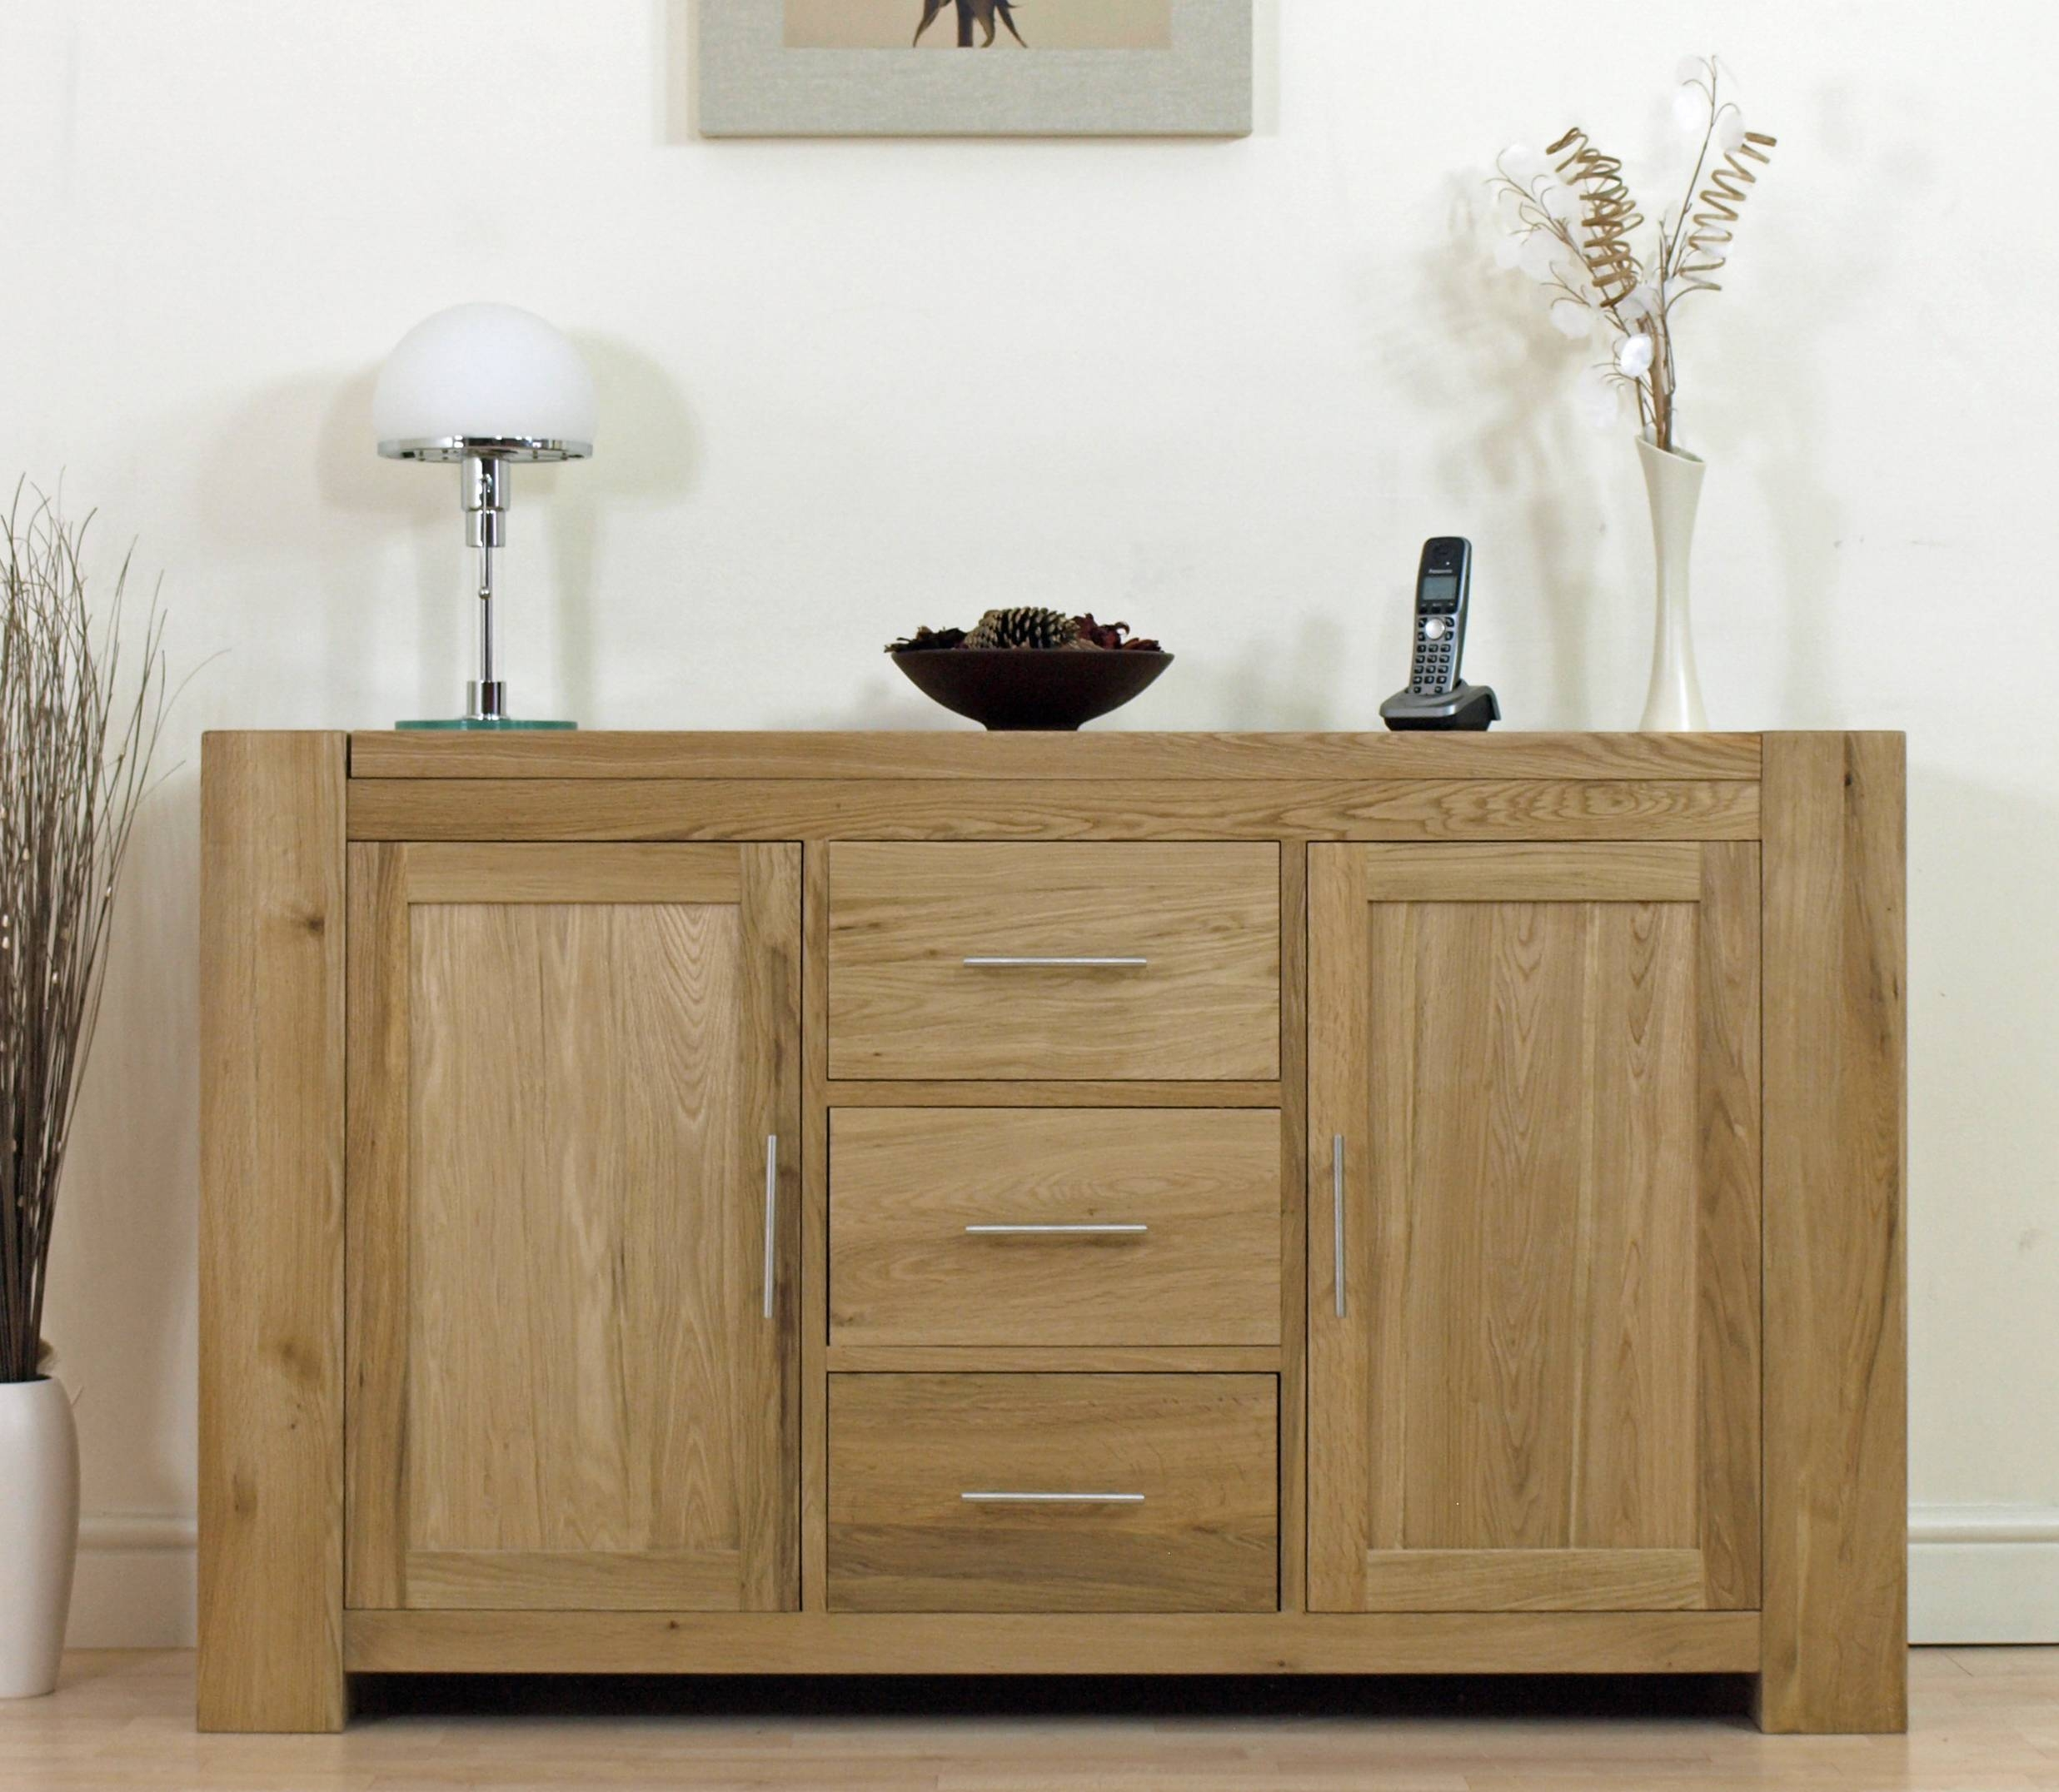 Solid Oak Sideboard Is Your First Choice Living Room Furniture - Hgnv throughout Living Room Sideboards (Image 30 of 30)